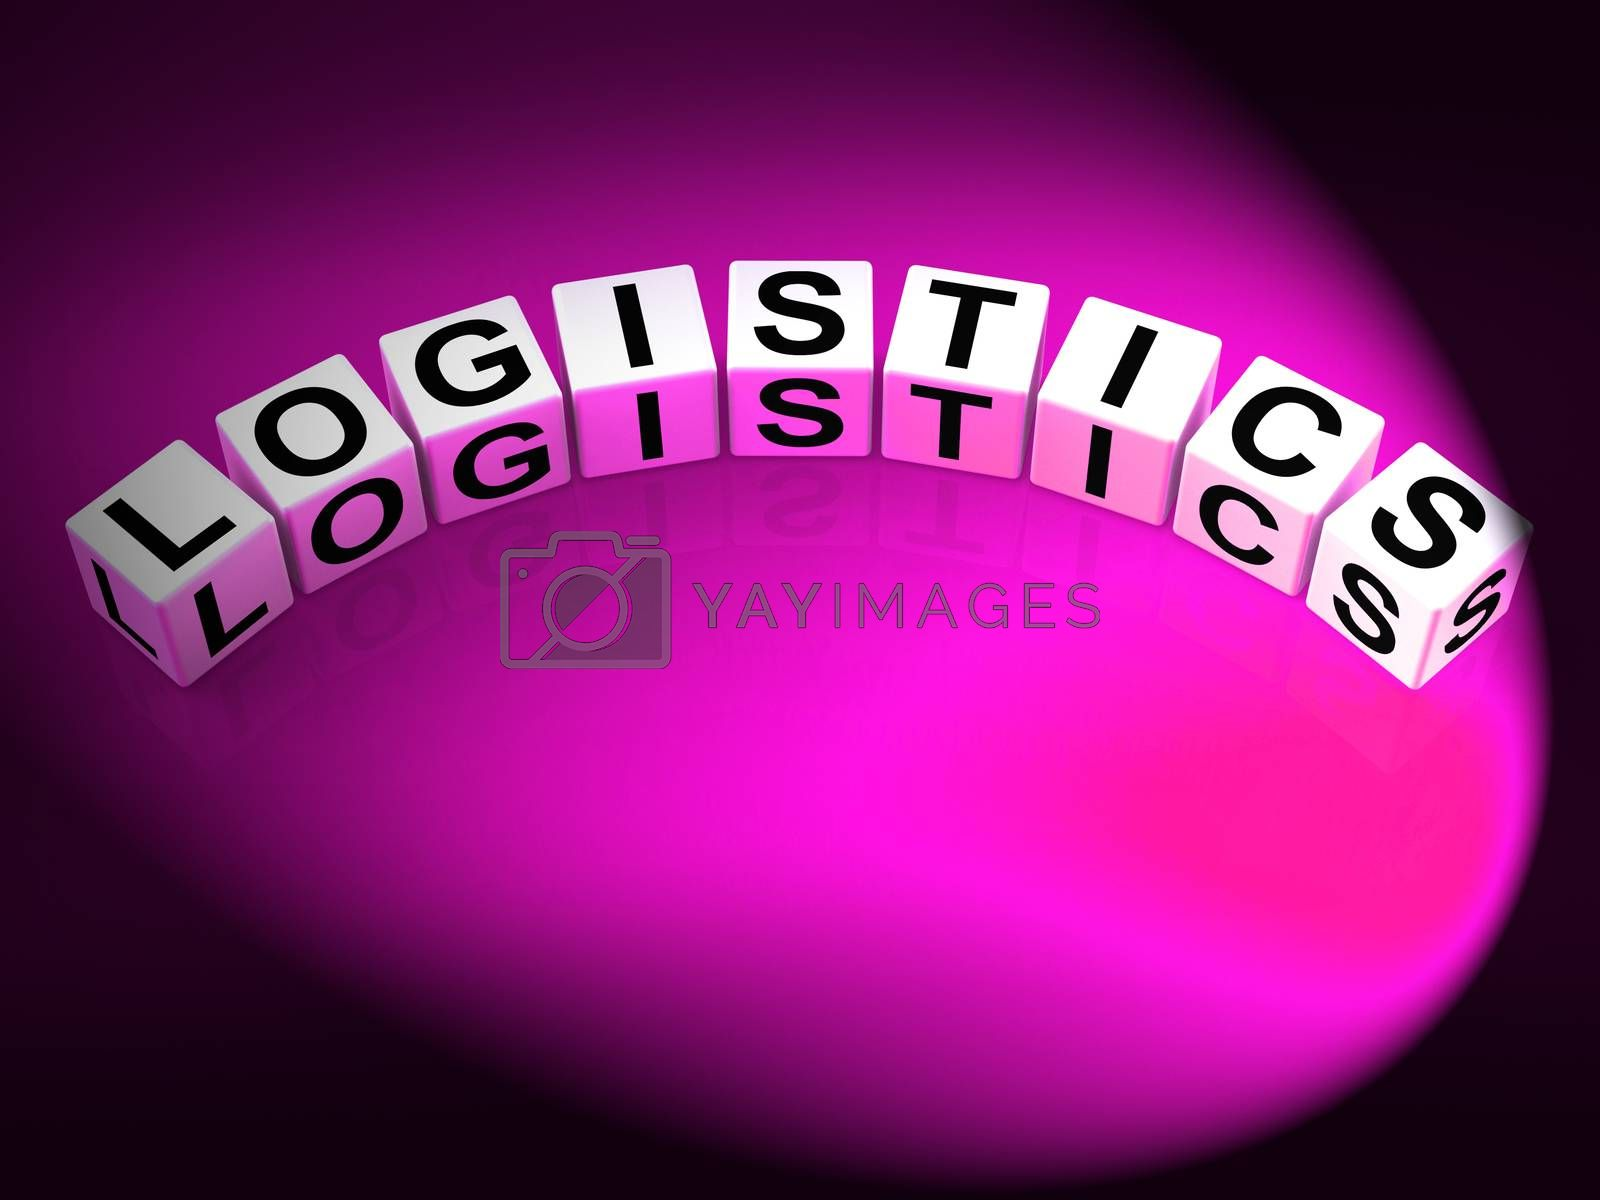 Logistics Dice Show Logistical Strategies and Plans by stuartmiles